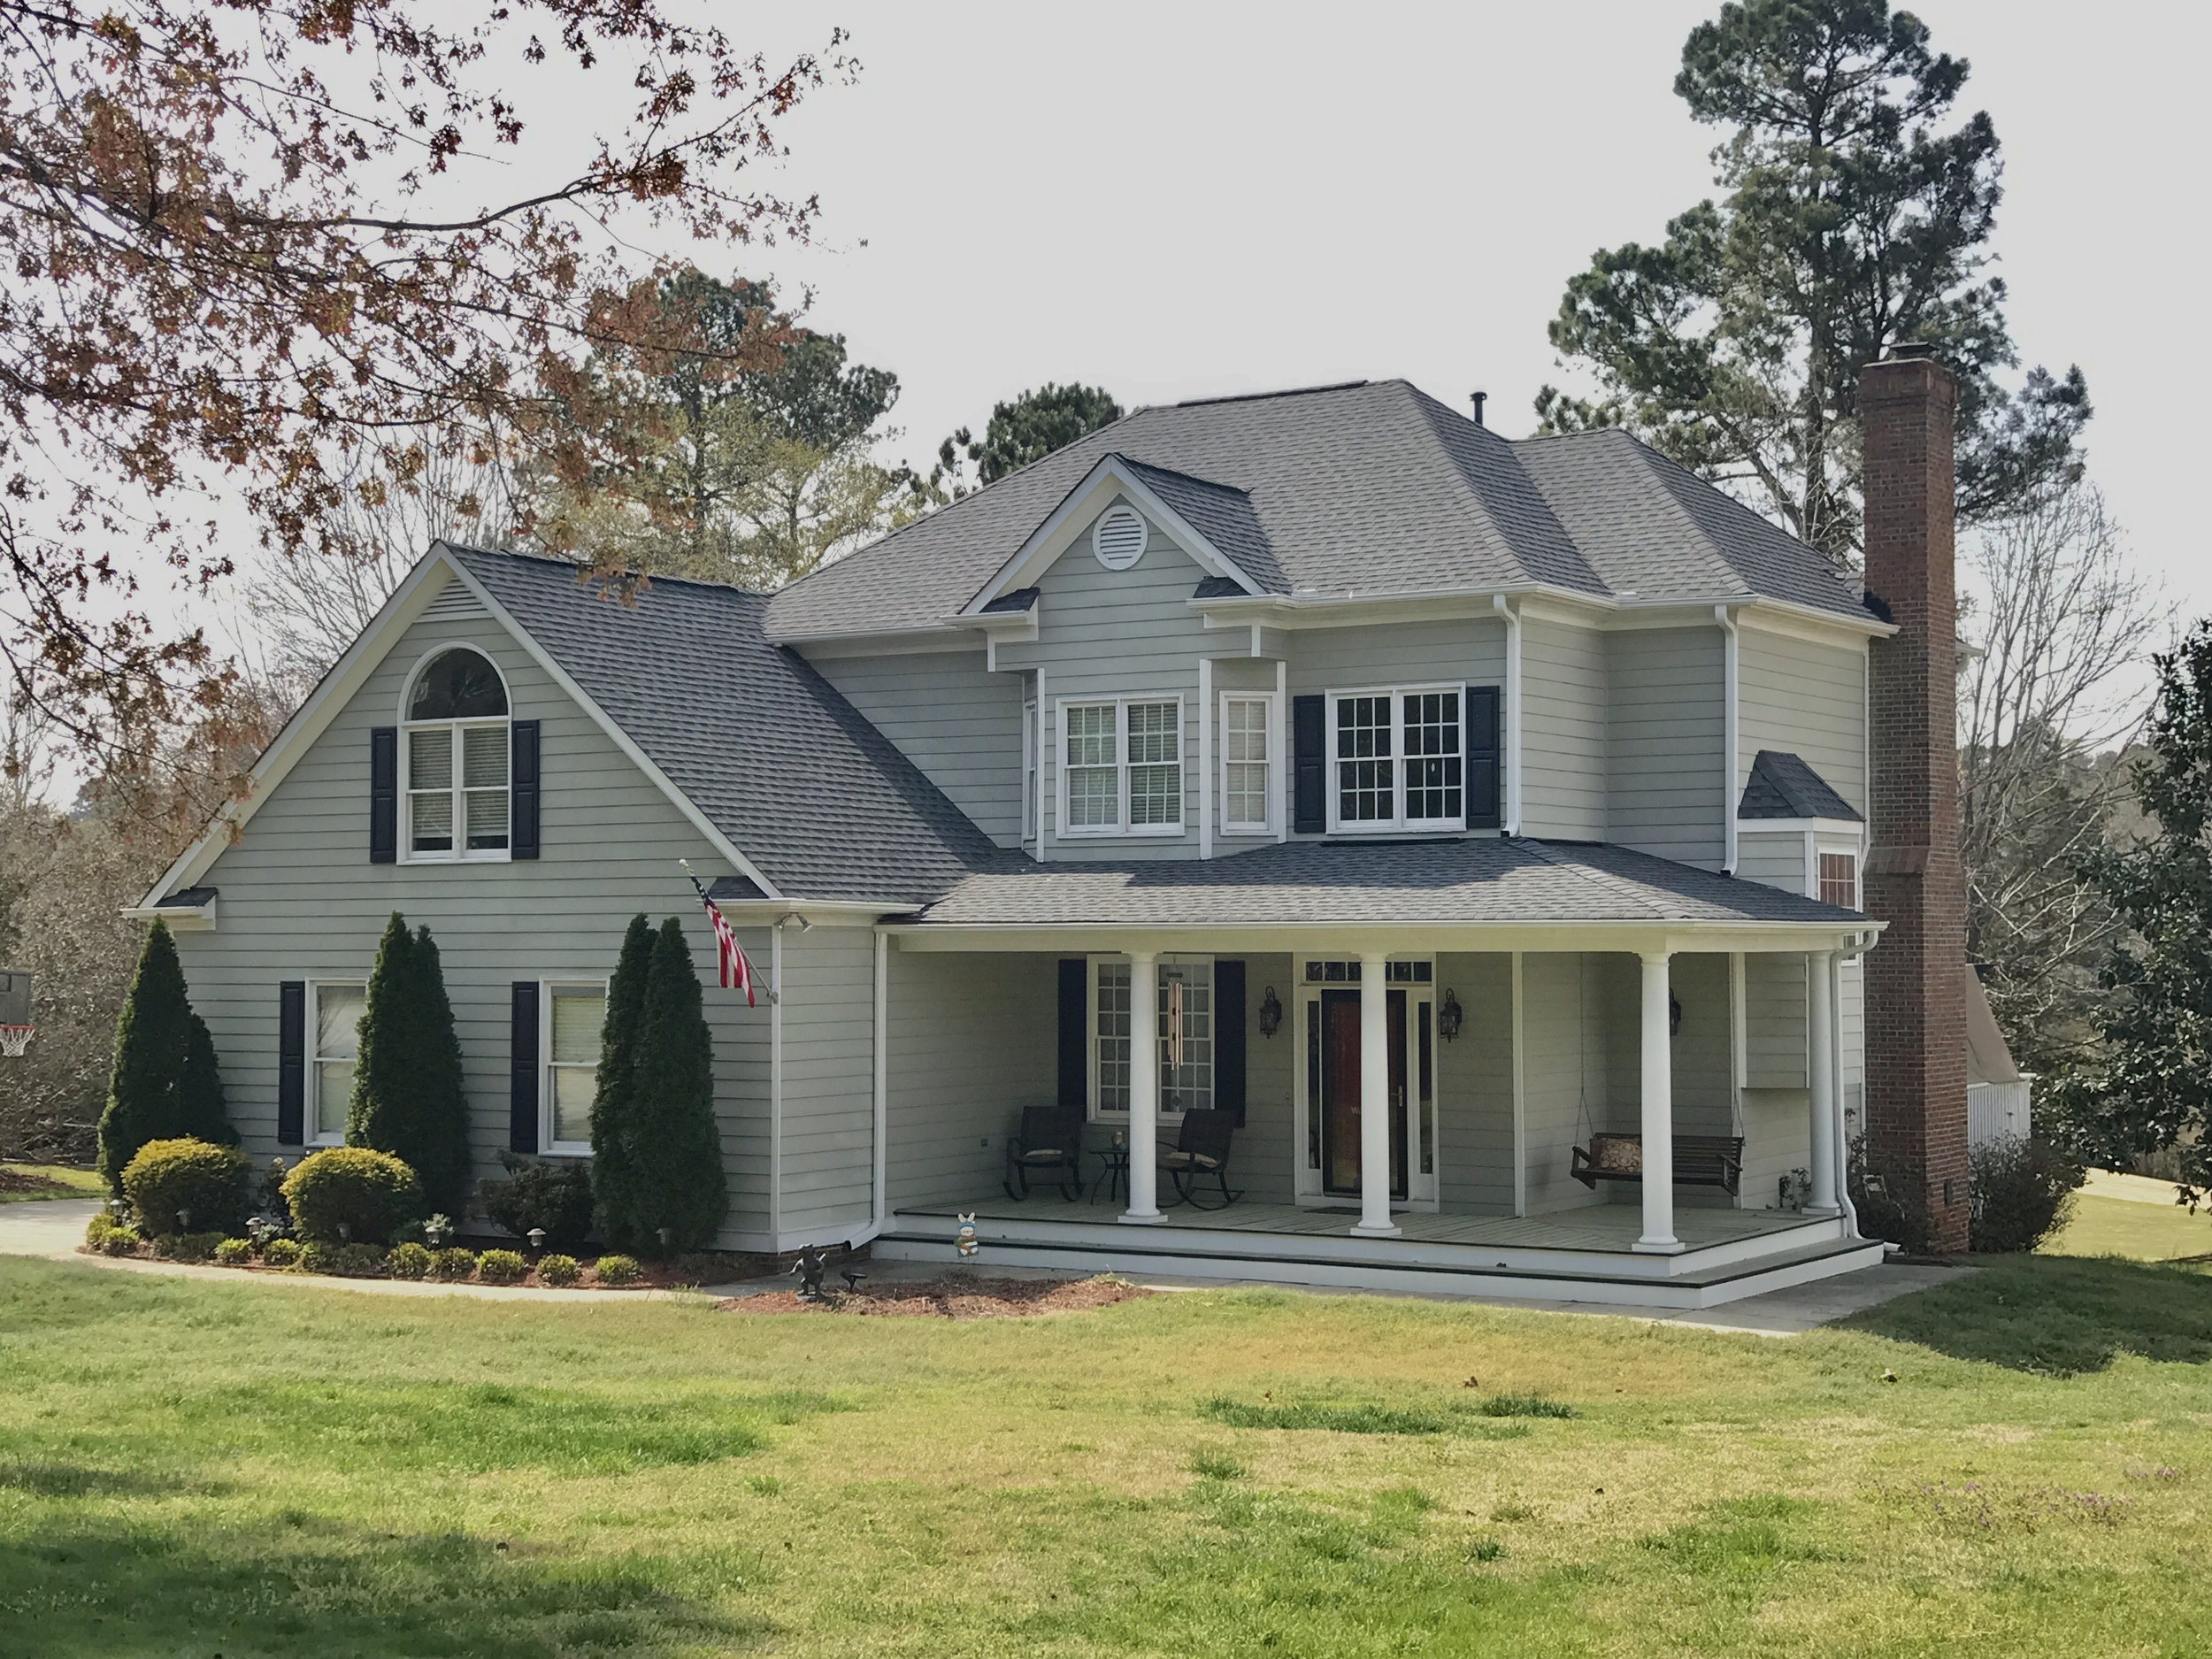 Family Owned & Operated - We are a full service roofing company serving customers throughout central and eastern North Carolina.